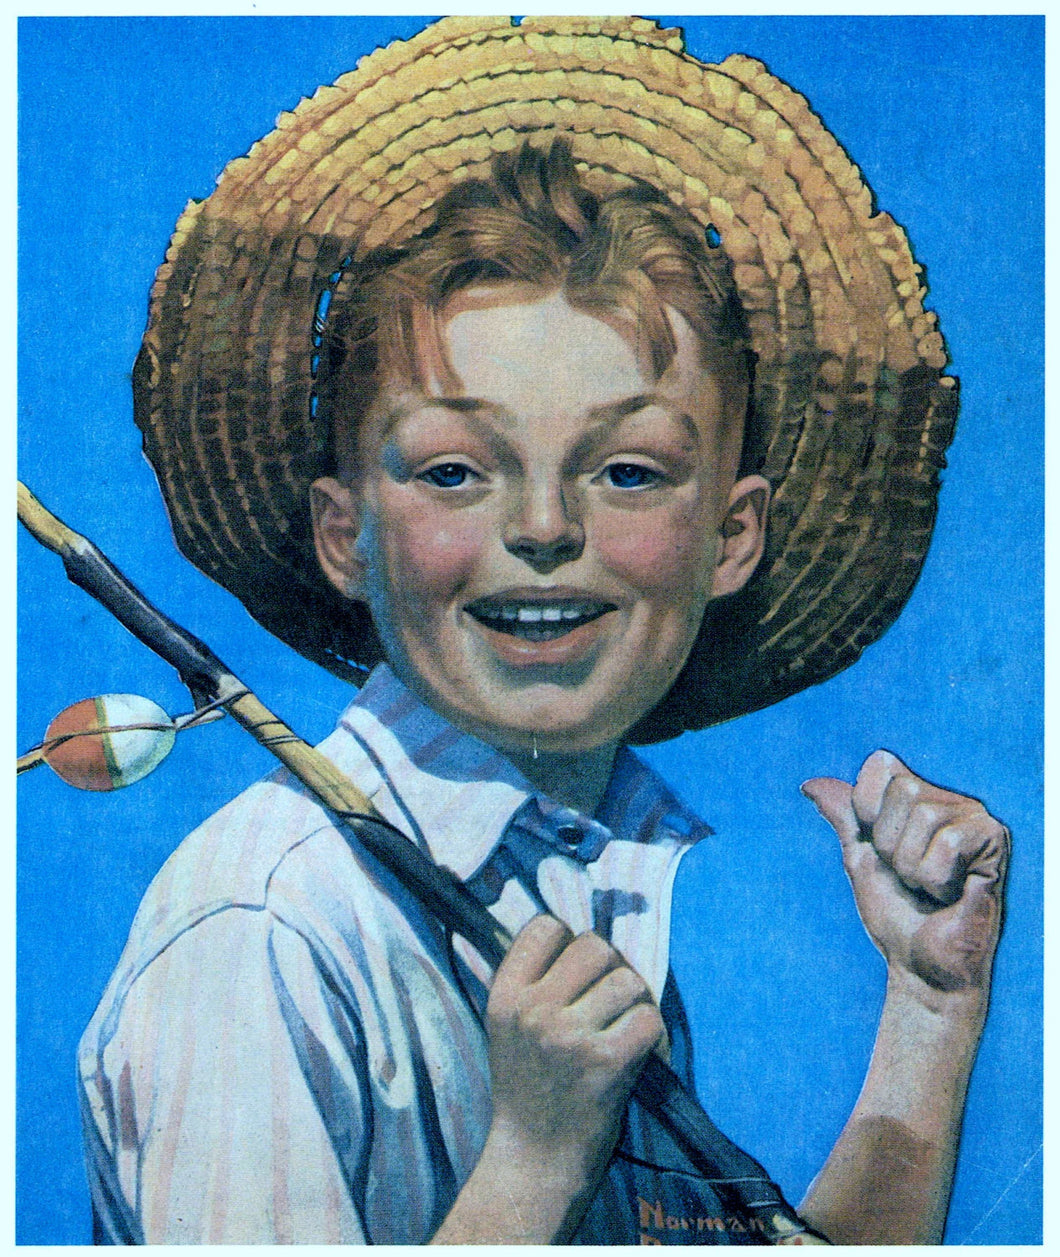 Vintage, Art Print, Norman Rockwell, Boy with Fishing Pole 1919, Fishing Print, Fishing Decor, Fishing Gifts for Men, Fishing Gifts, Fishing